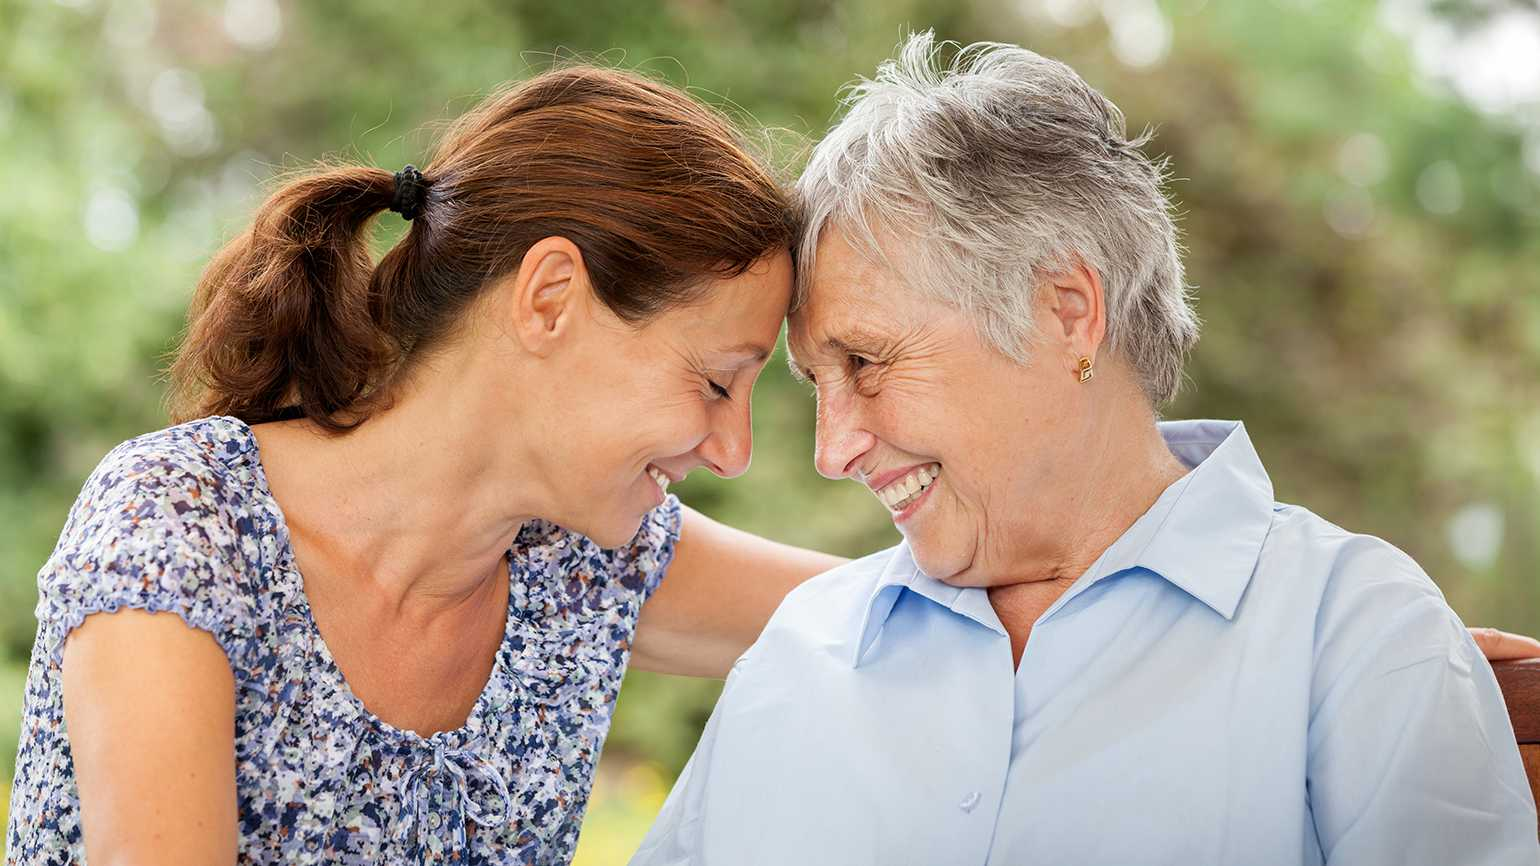 Continue doing the loving work you do with these caregiving tips.